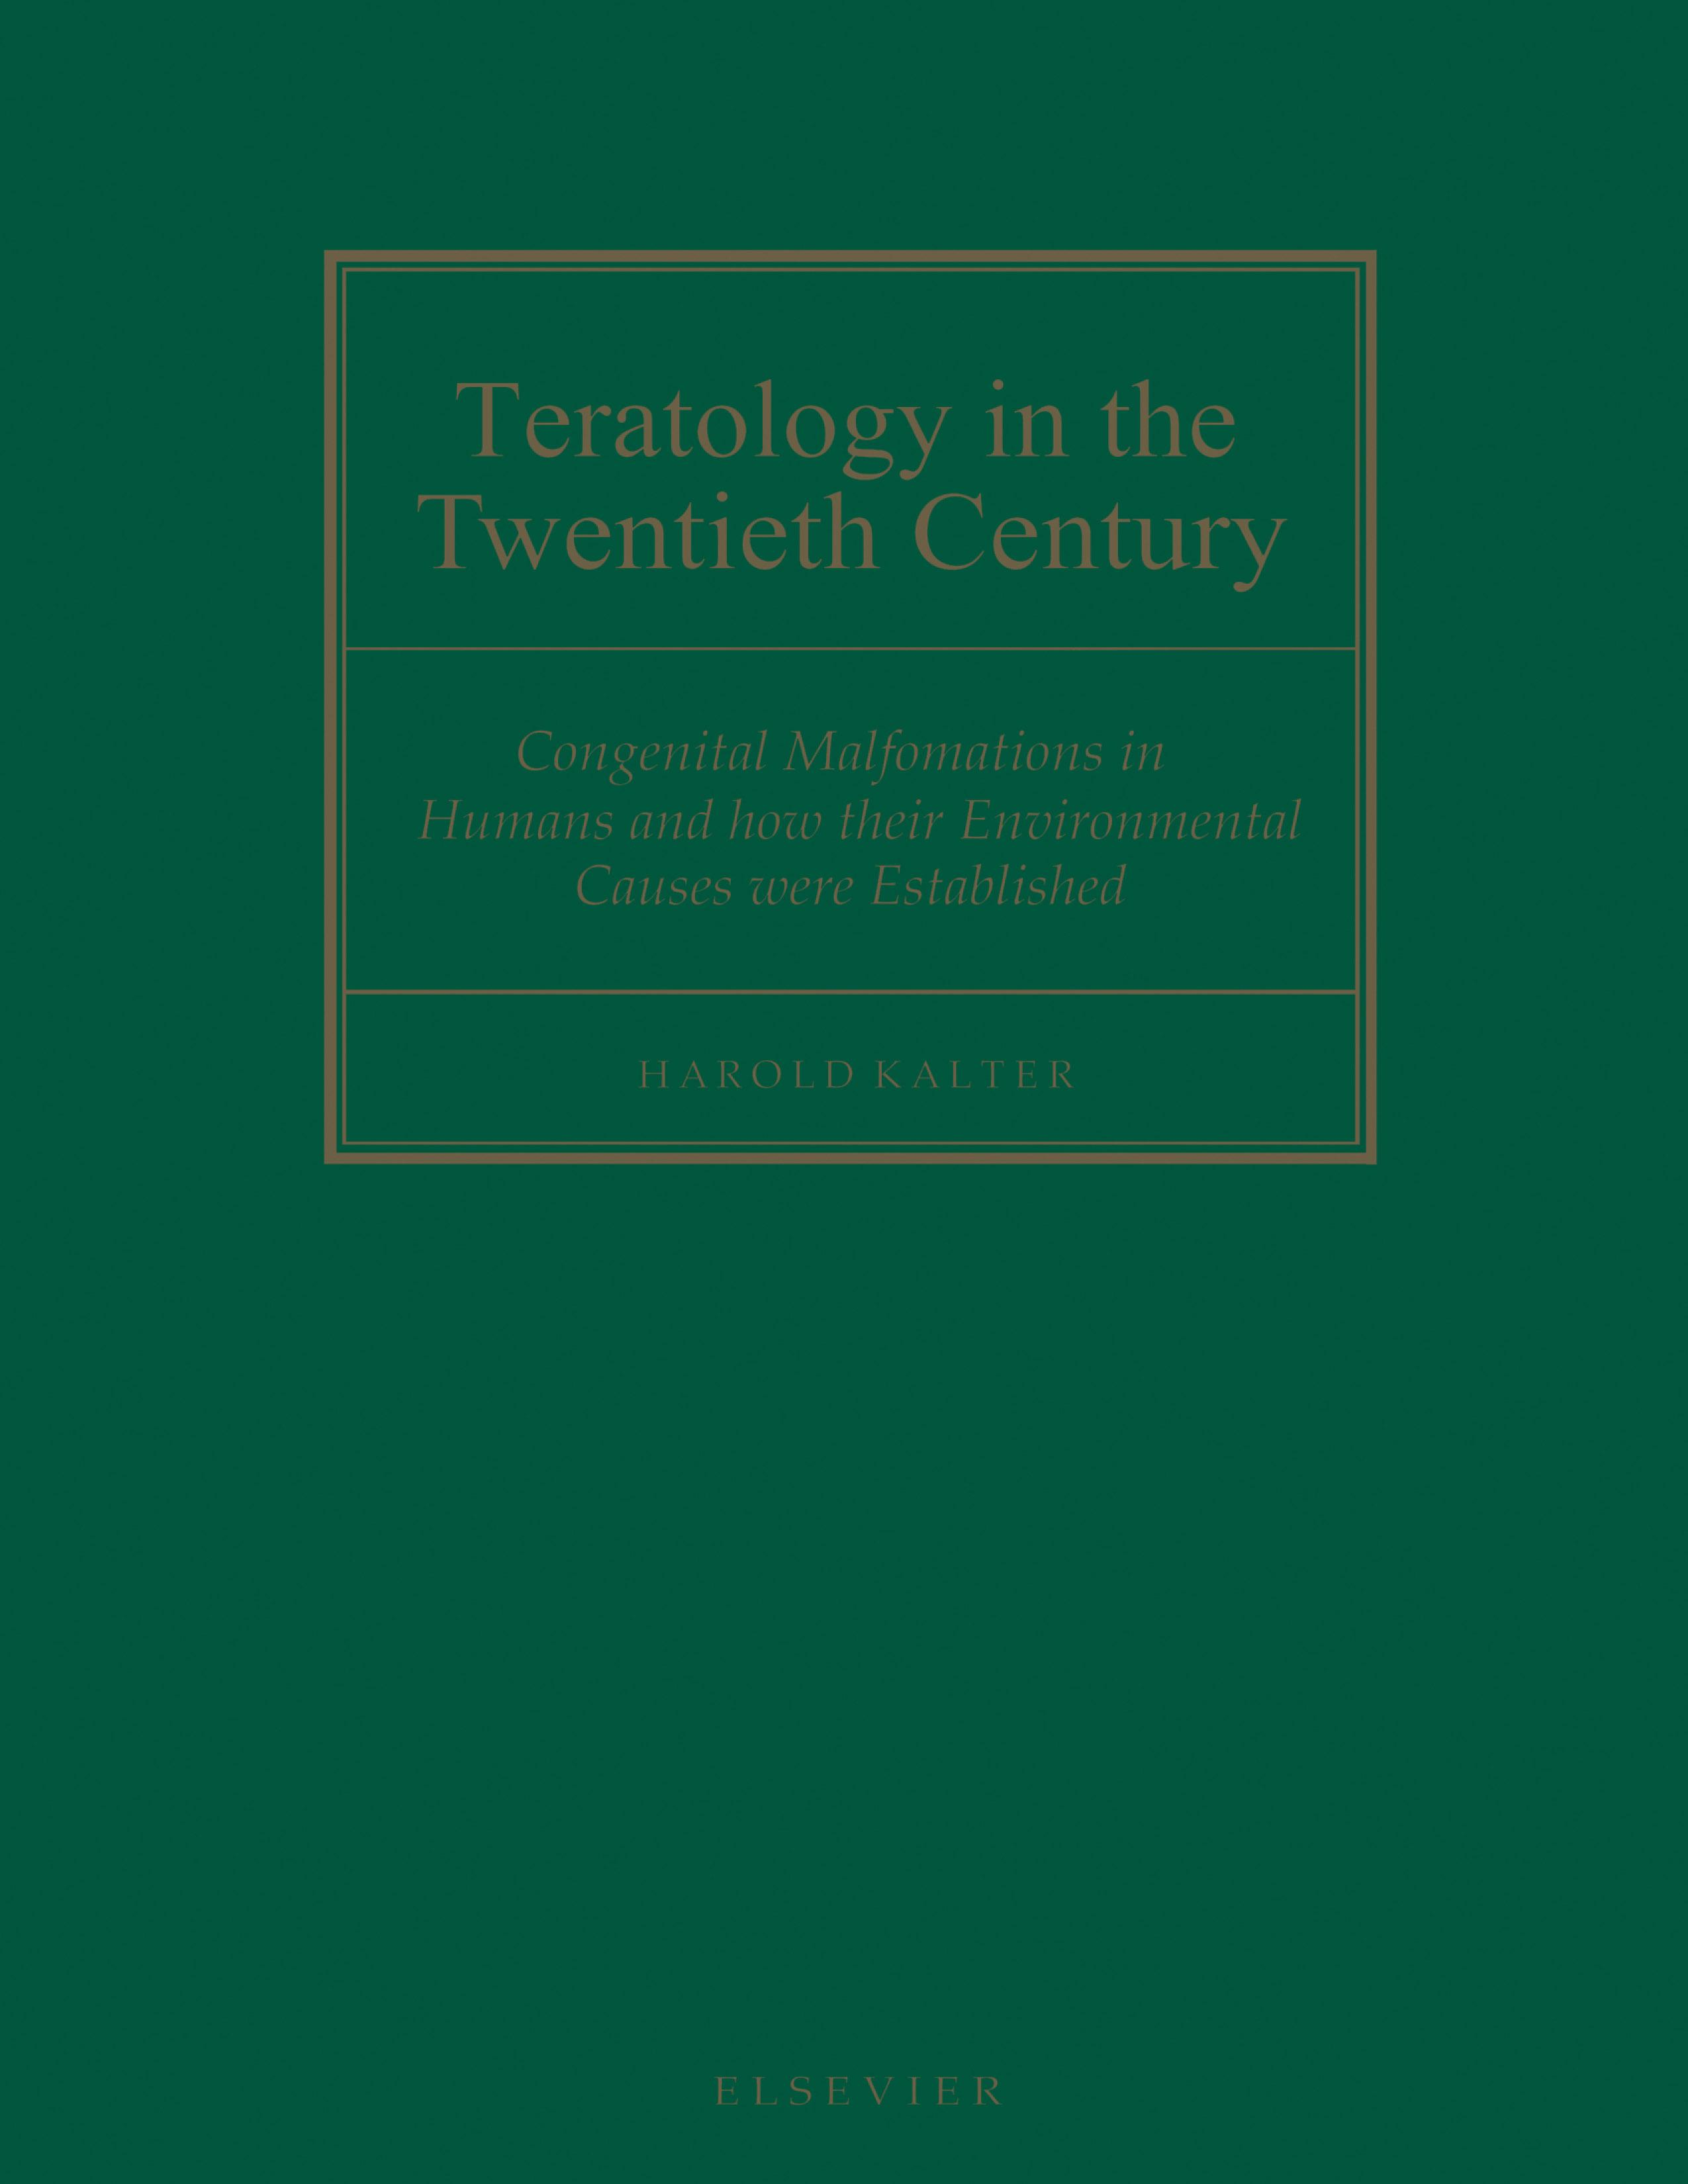 Teratology in the Twentieth Century: Congenital malformations in humans and how their environmental causes were established EB9780080542355